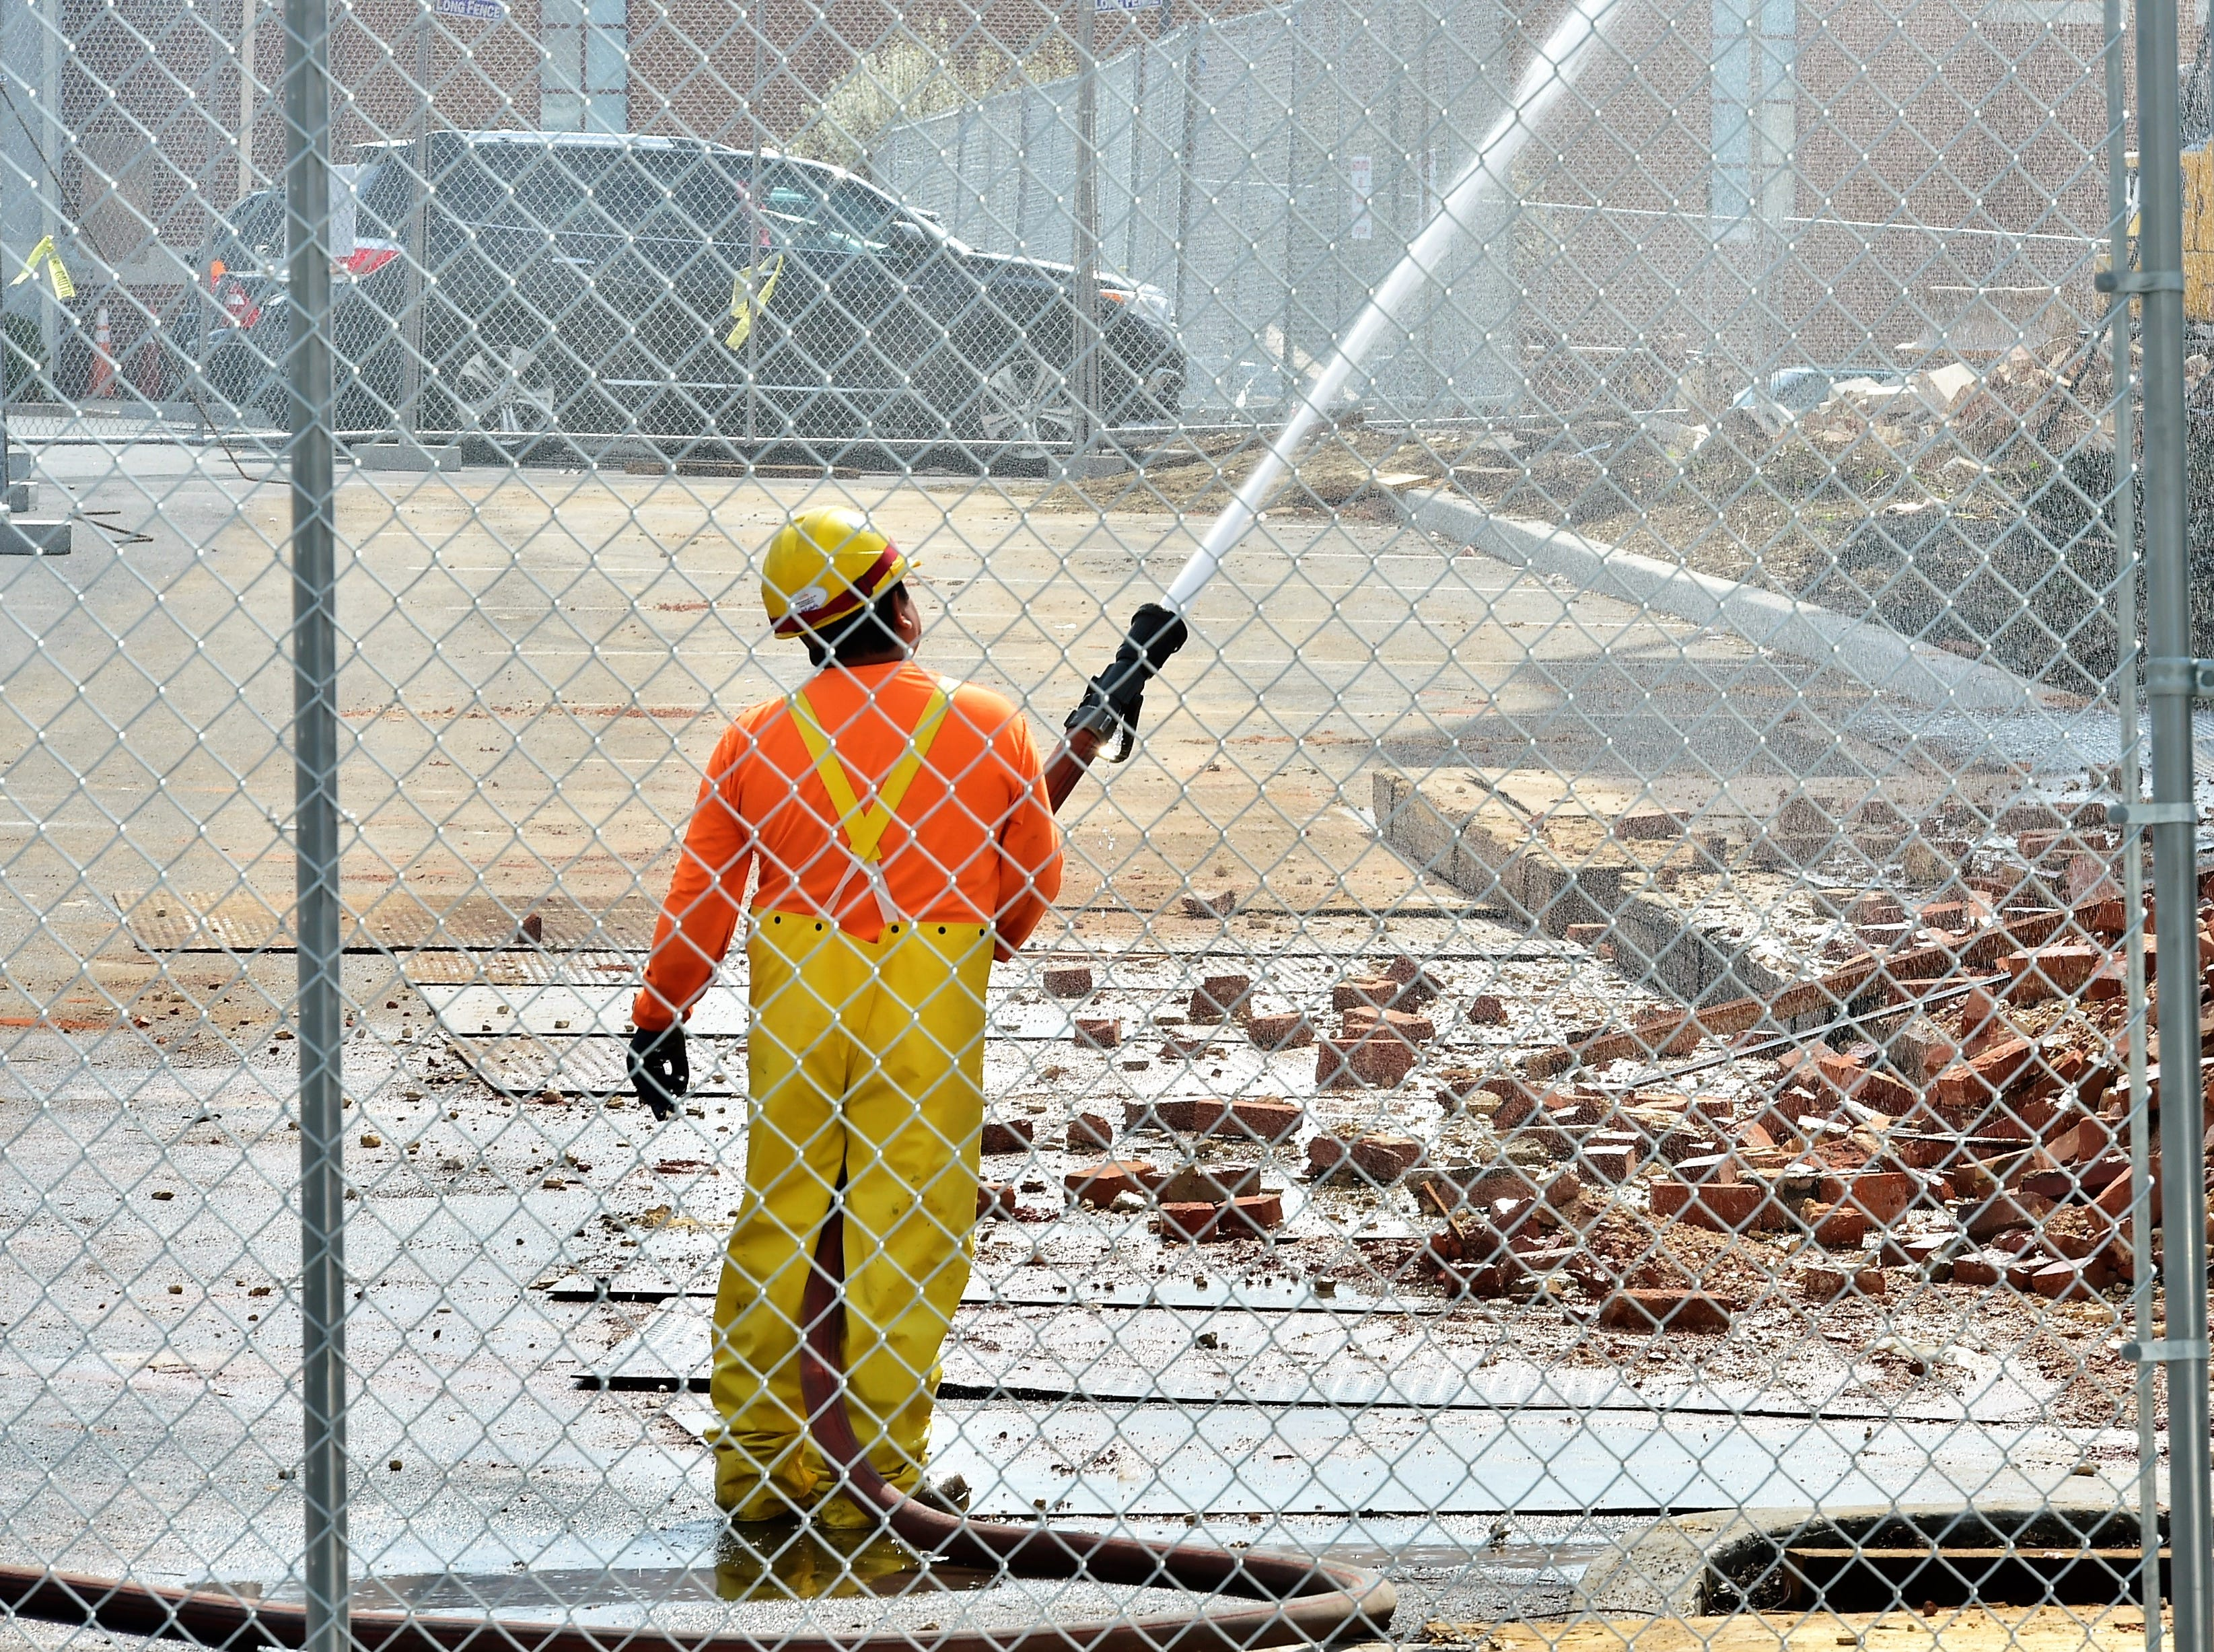 A man sprays water to settle flying dust as the old Wogan's Uniform building on North Main Street, Chambersburg, is demolished on Tuesday, April 9, 2019. Traffic will be limited to one lane through the end of the week as work continues. Lycoming Supply is tearing down structures in the first block of North Main Street as part of the $67.8 million Franklin County Court Facility Improvement Project. A judicial center will be built in the space.